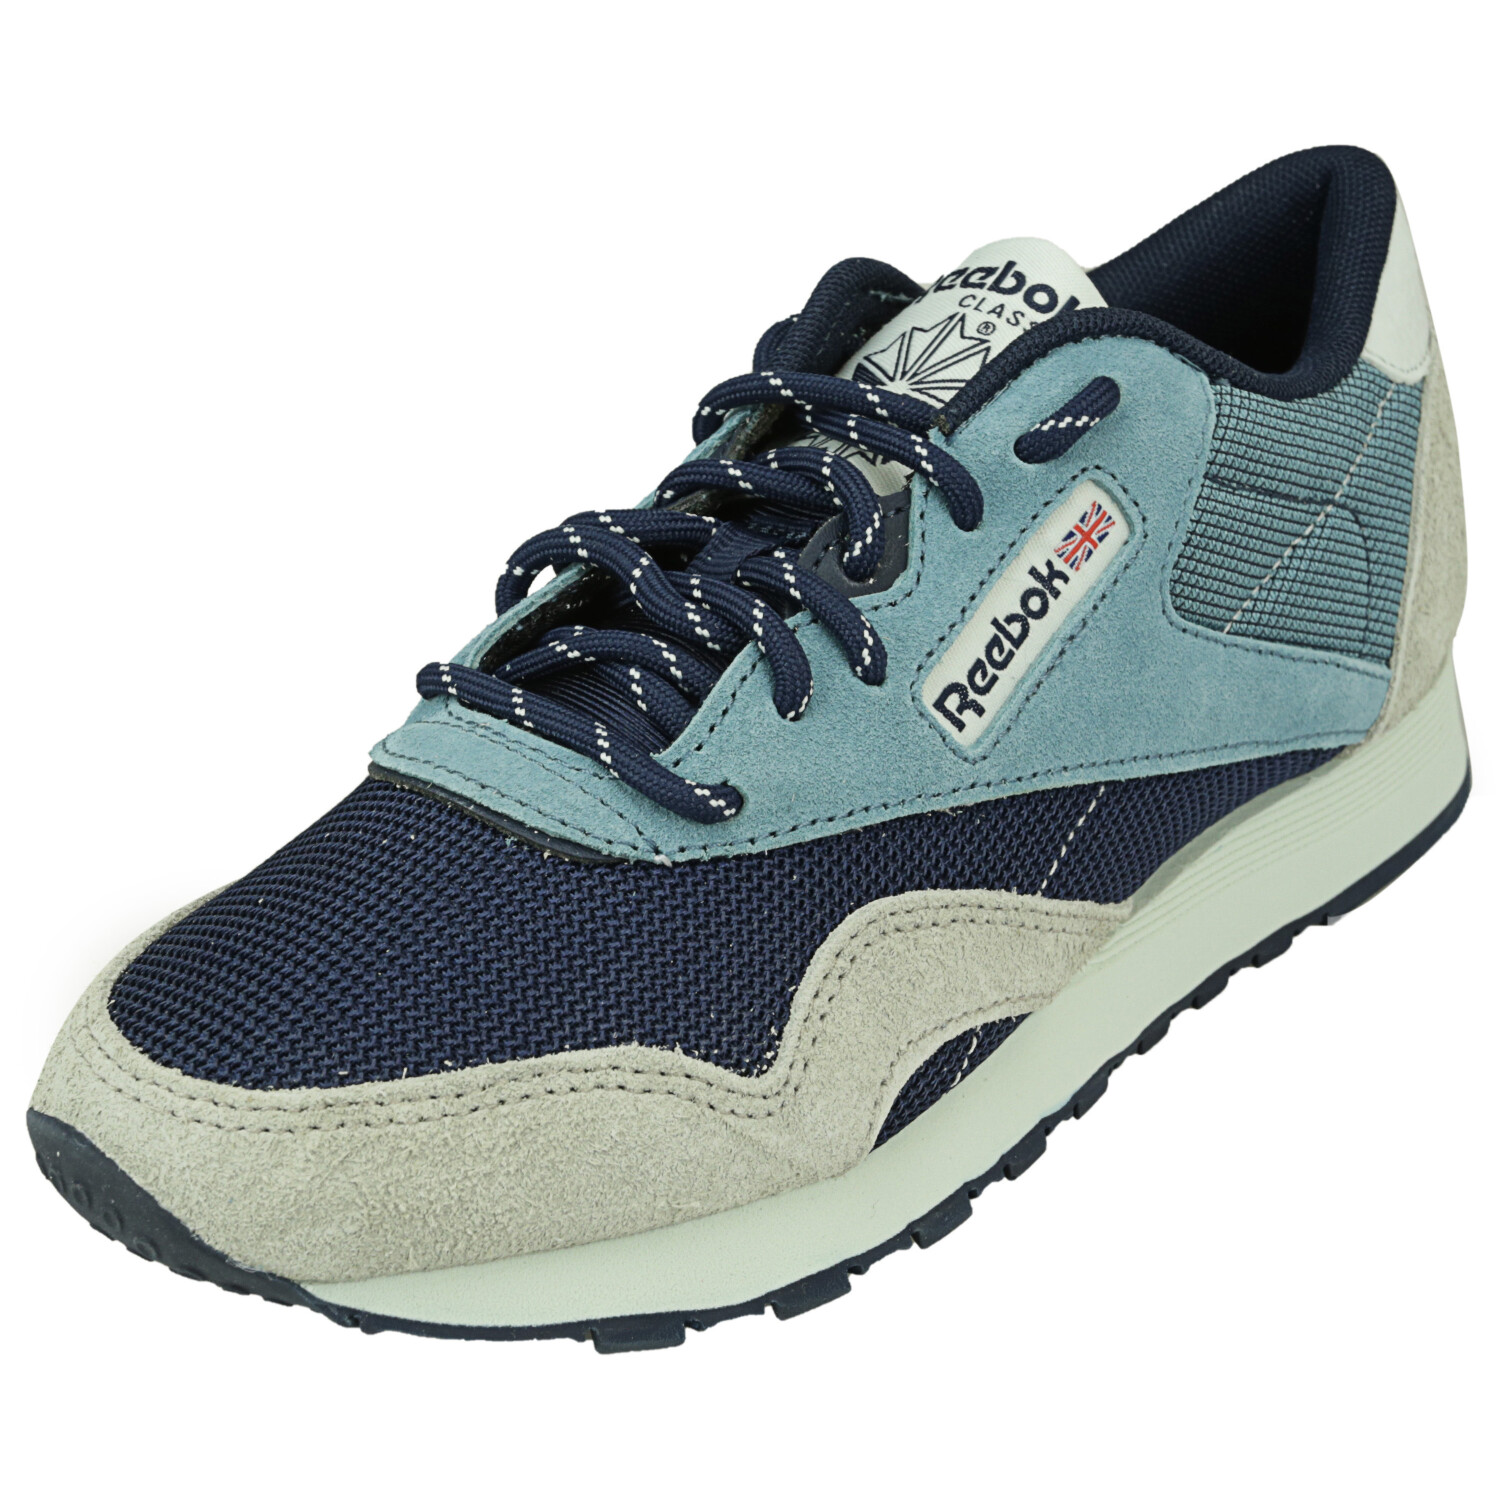 Reebok Men's Cl Nylon Mineral Mist / Navy Sand Polar Ankle-High Sneaker - 4.5M